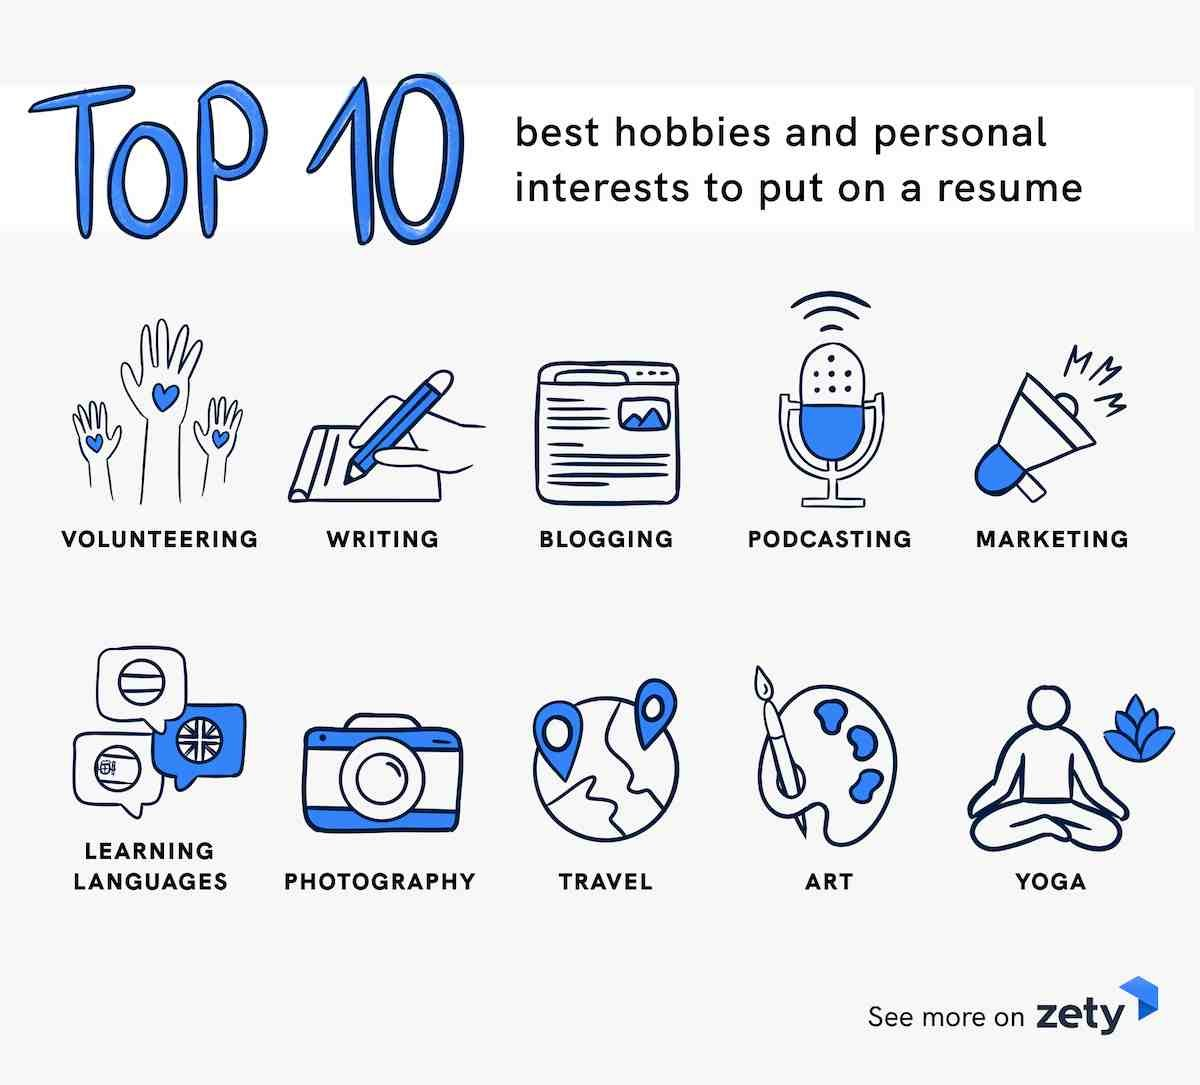 Top 10 best hobbies and personal interests to put on a resume